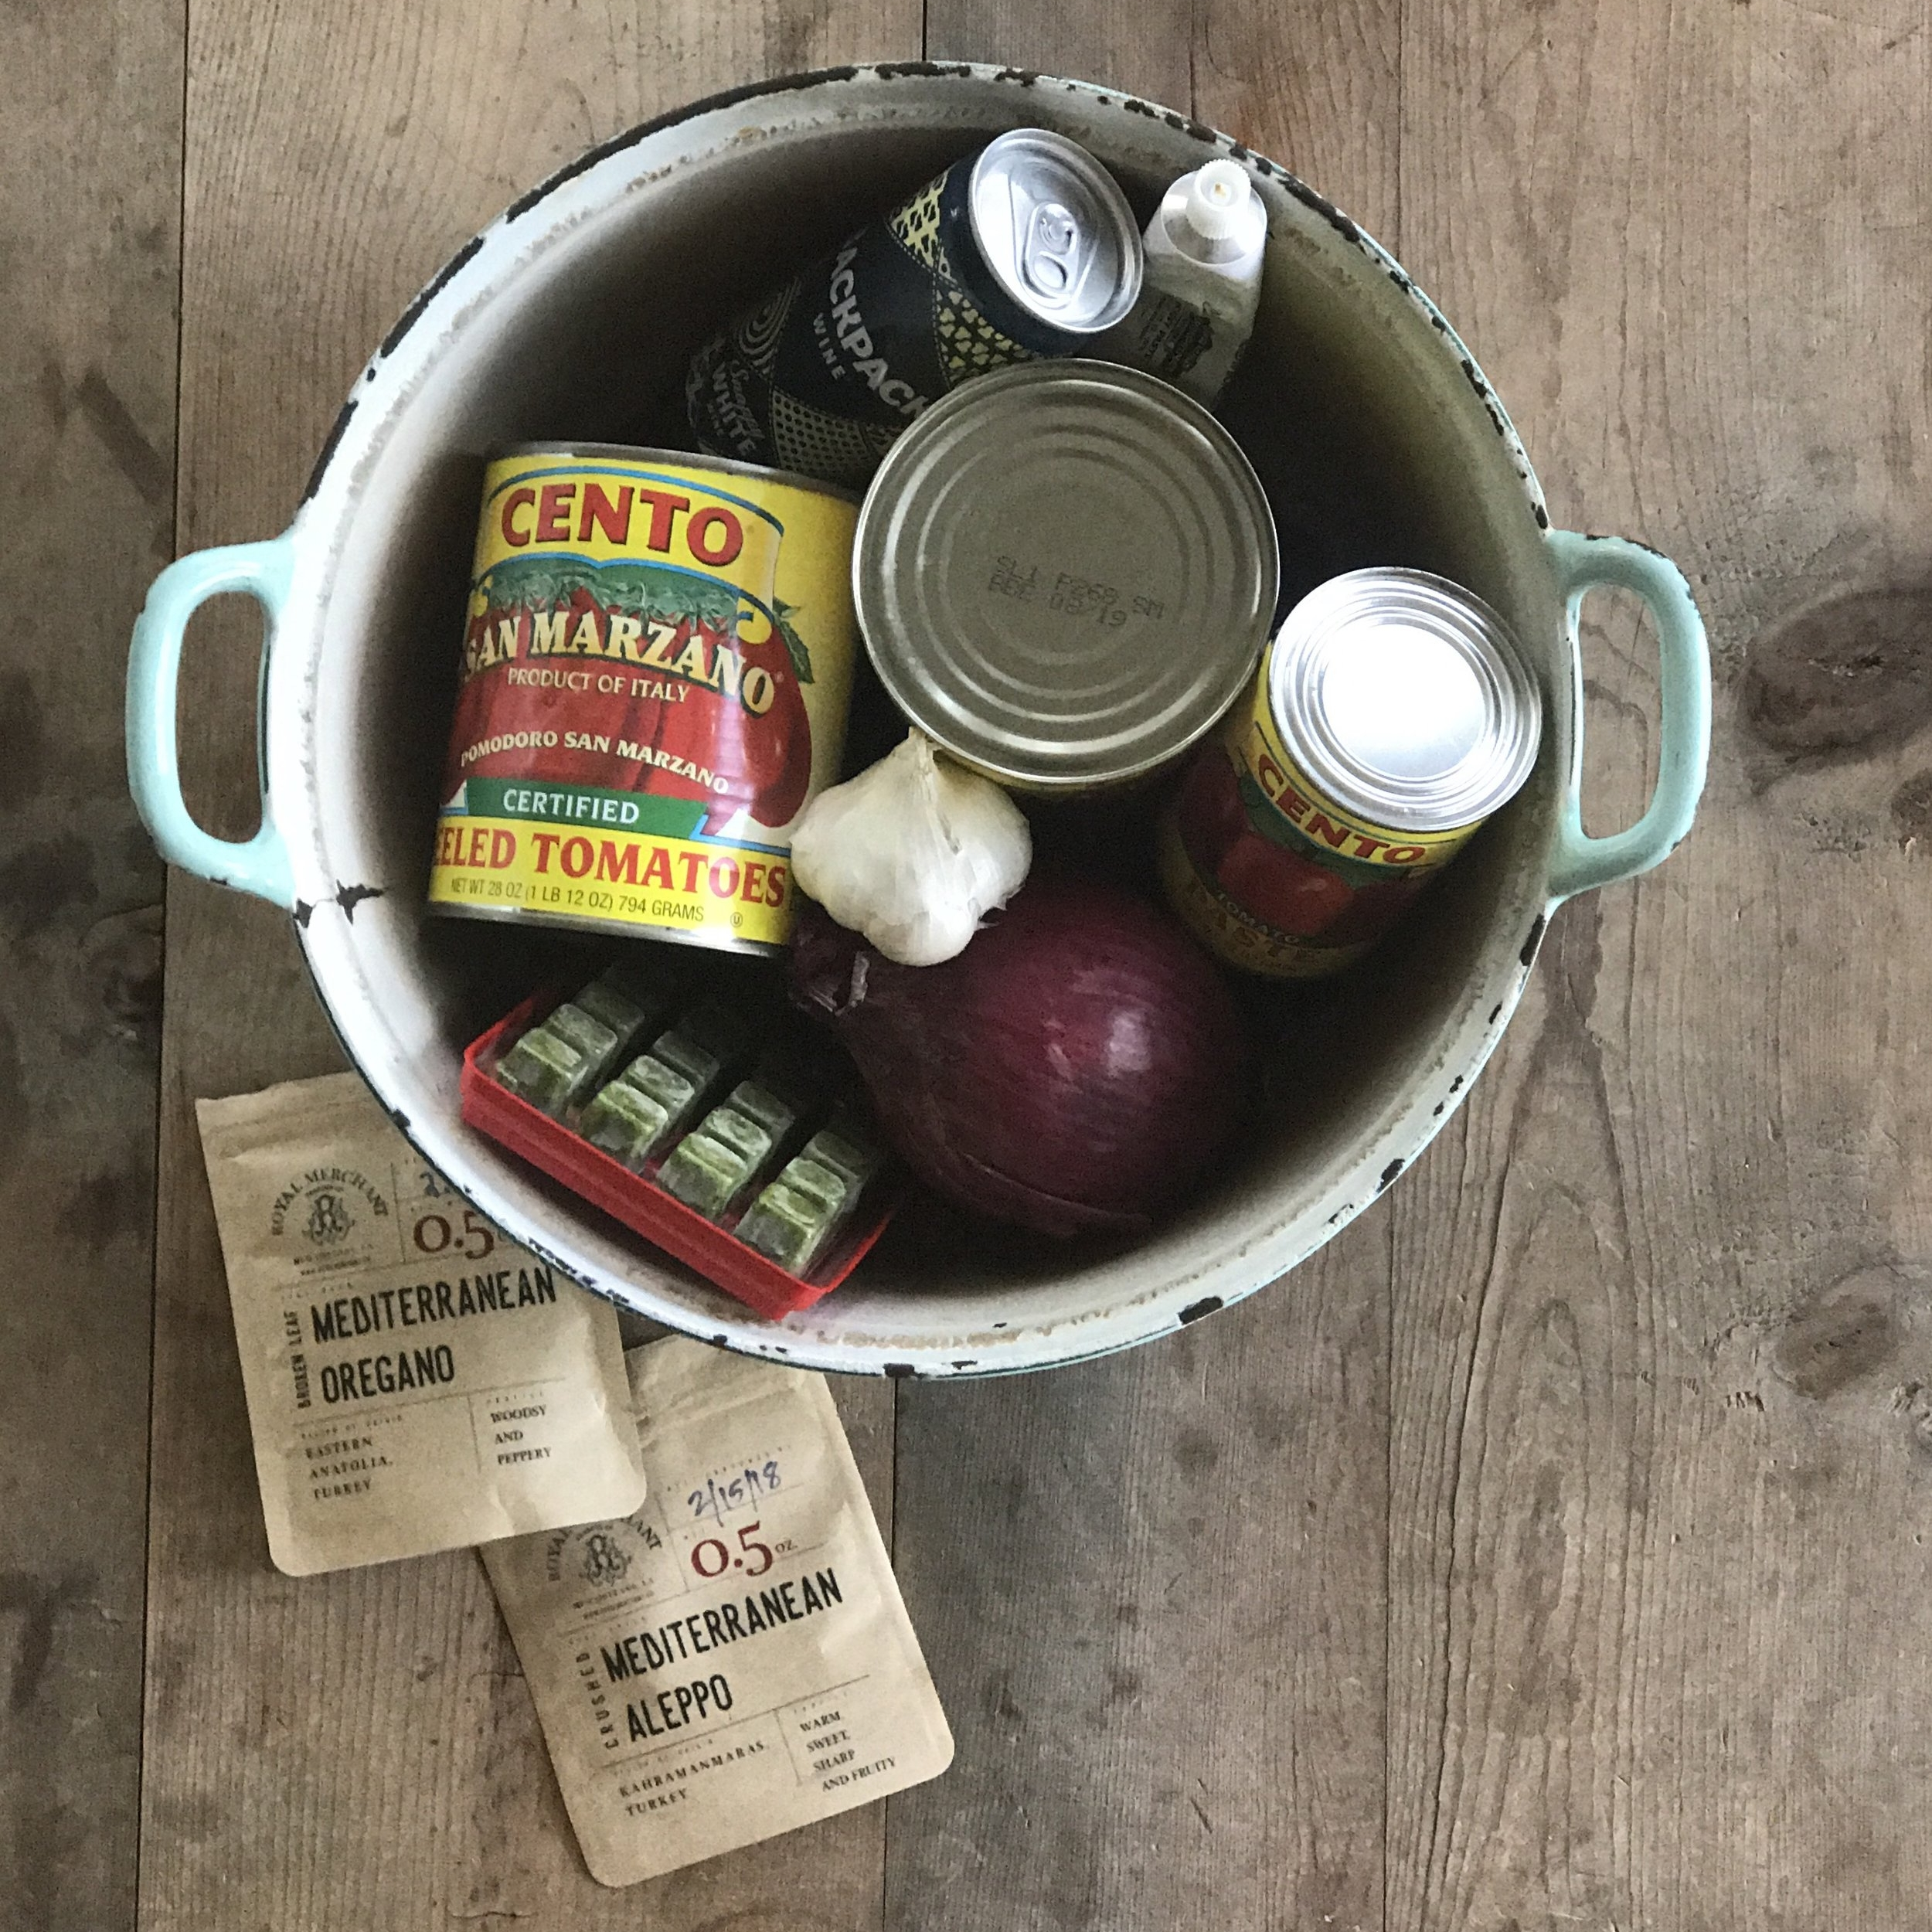 $60.00 / Three Months+ $12.00 Shipping - Savor the flavorfor 3 months at a time.Three separate monthly shipments of recipes, spices &herbs will be sent to your door monthly.Non-gift subscriptions and shipping fees are billed quarterly.